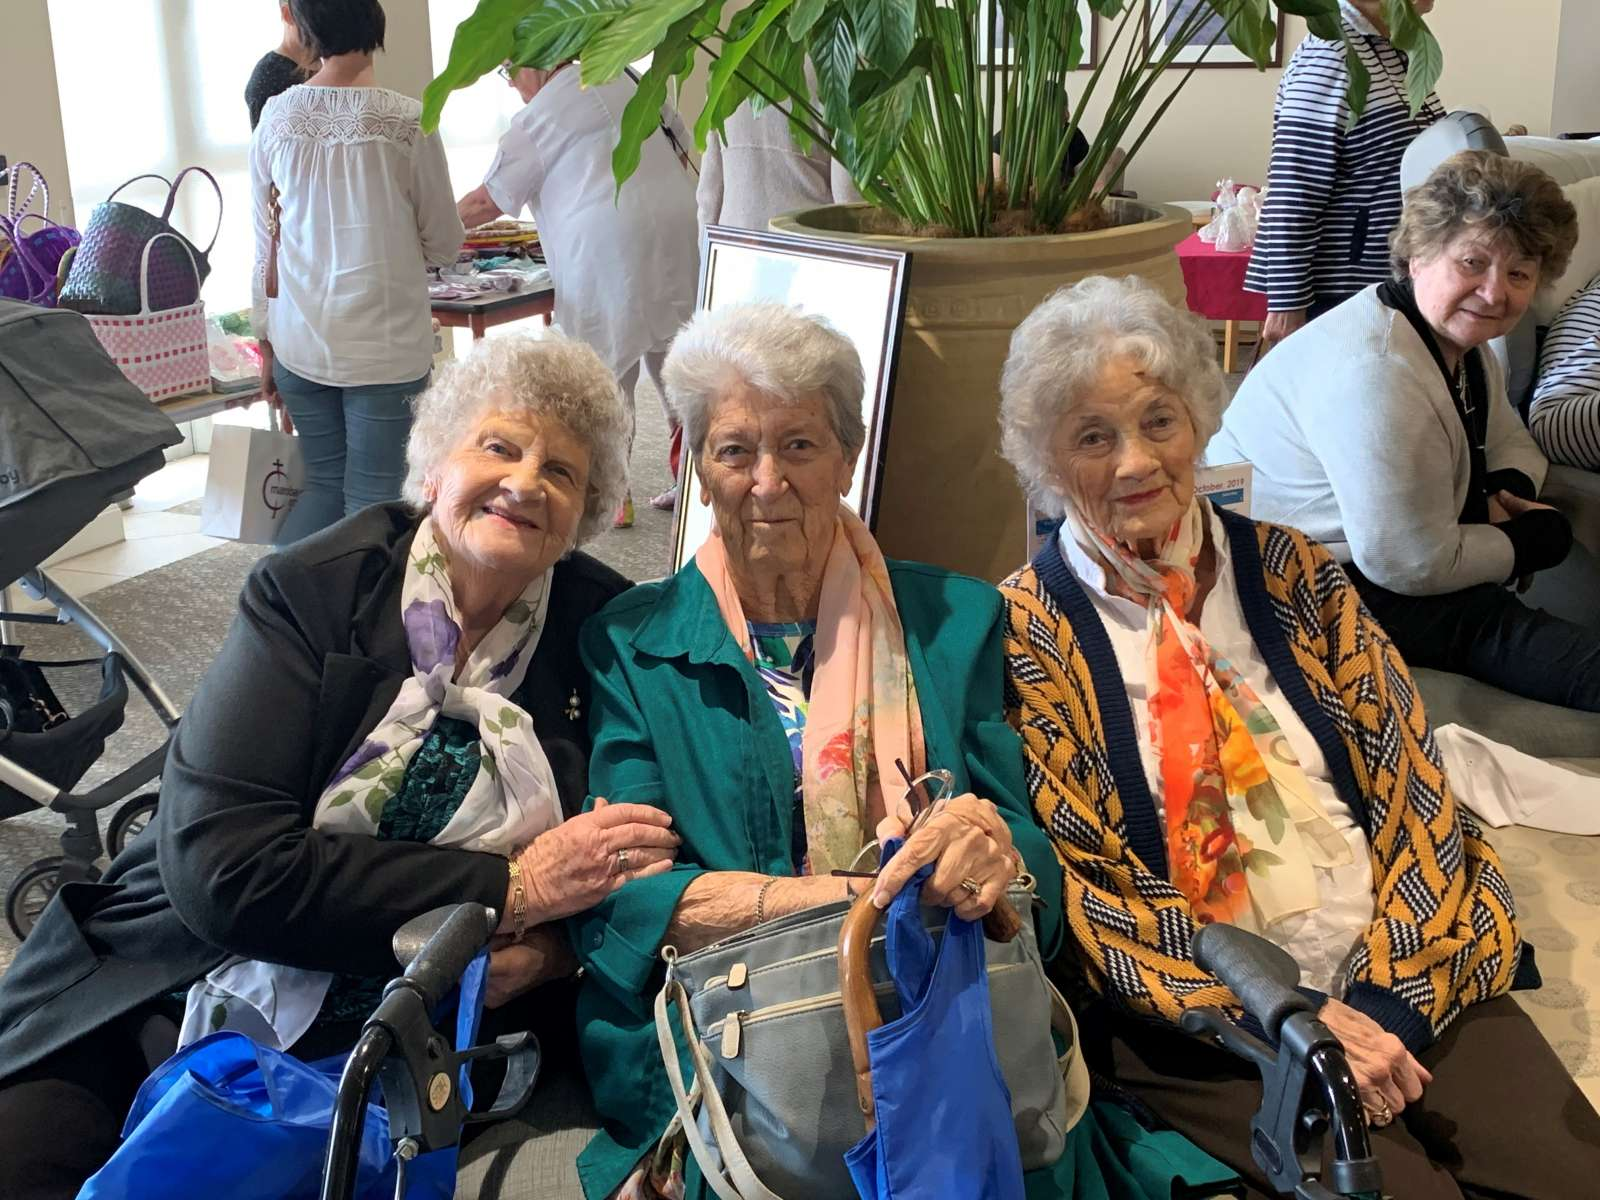 aged care residents smiling